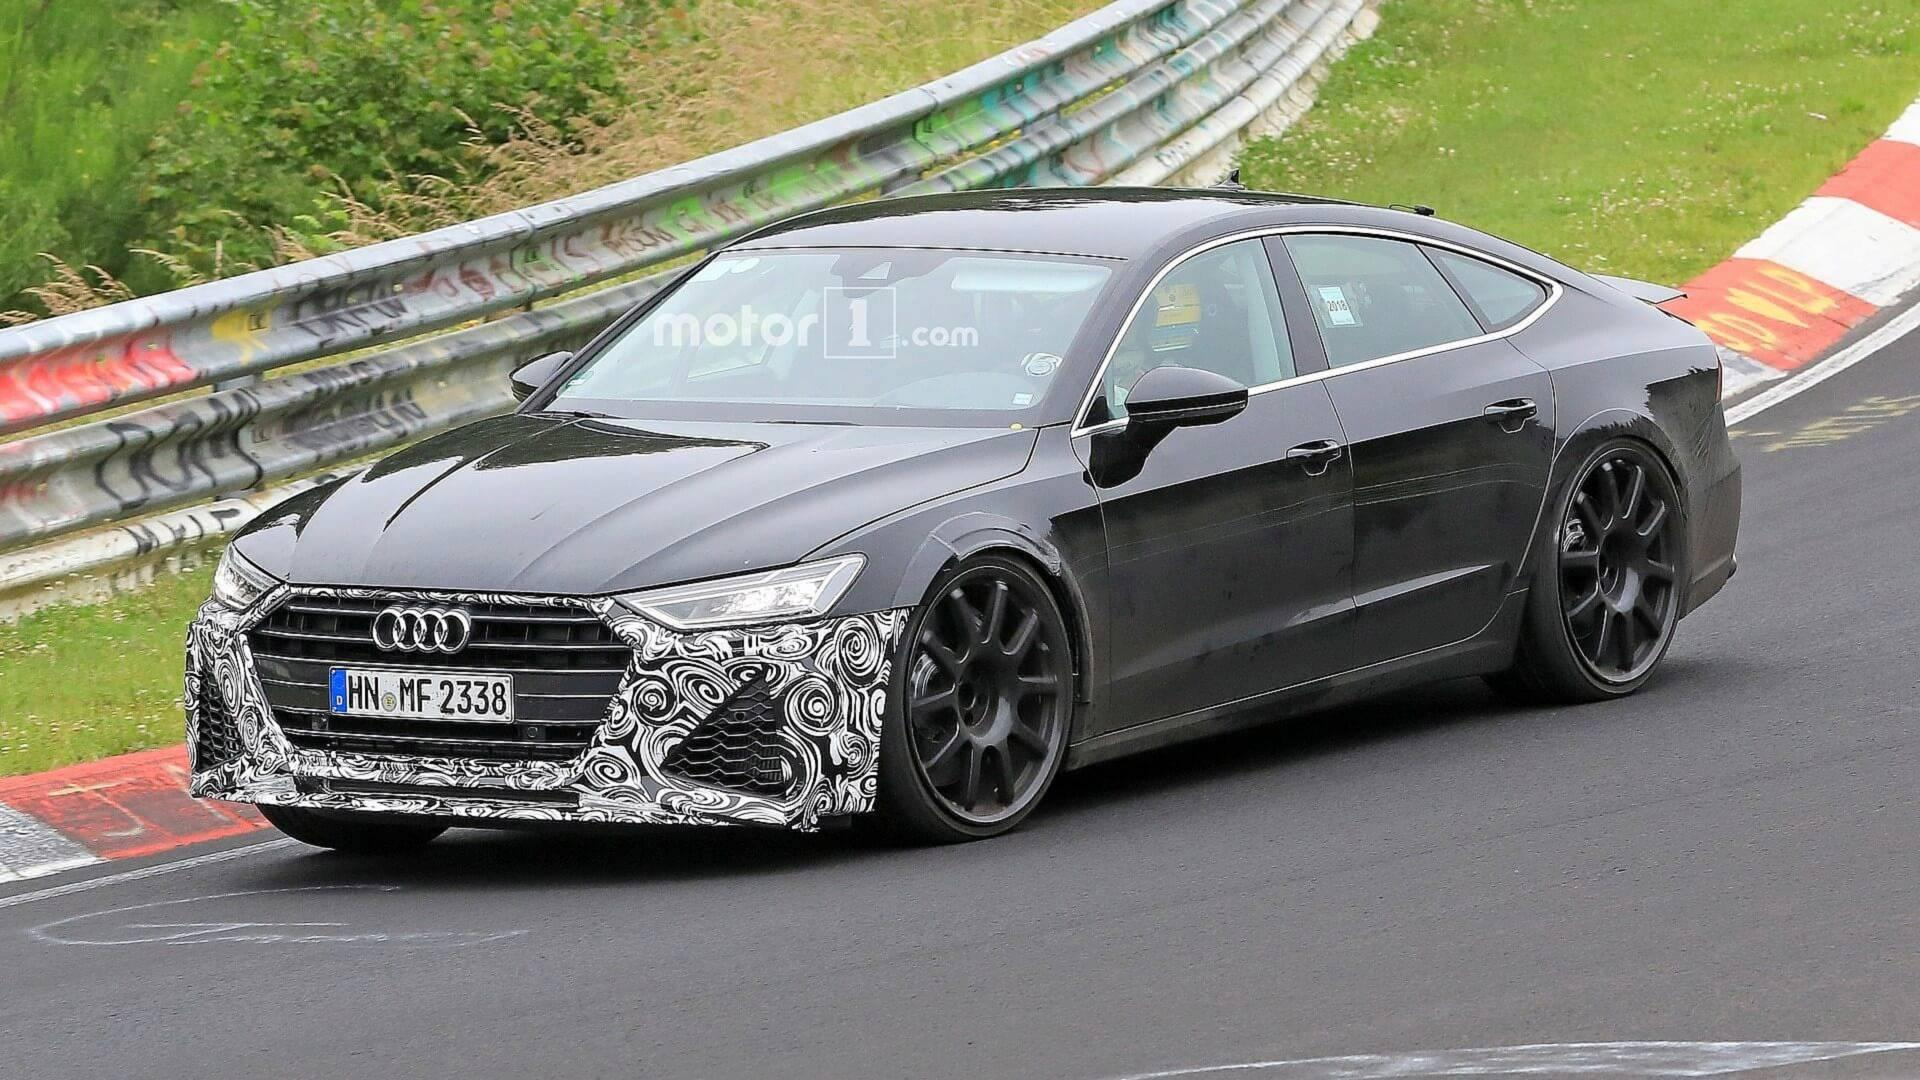 Audi Rs7 Tumblr >> New Audi RS7 Spied Going Fast Through The Nürburgring Corners